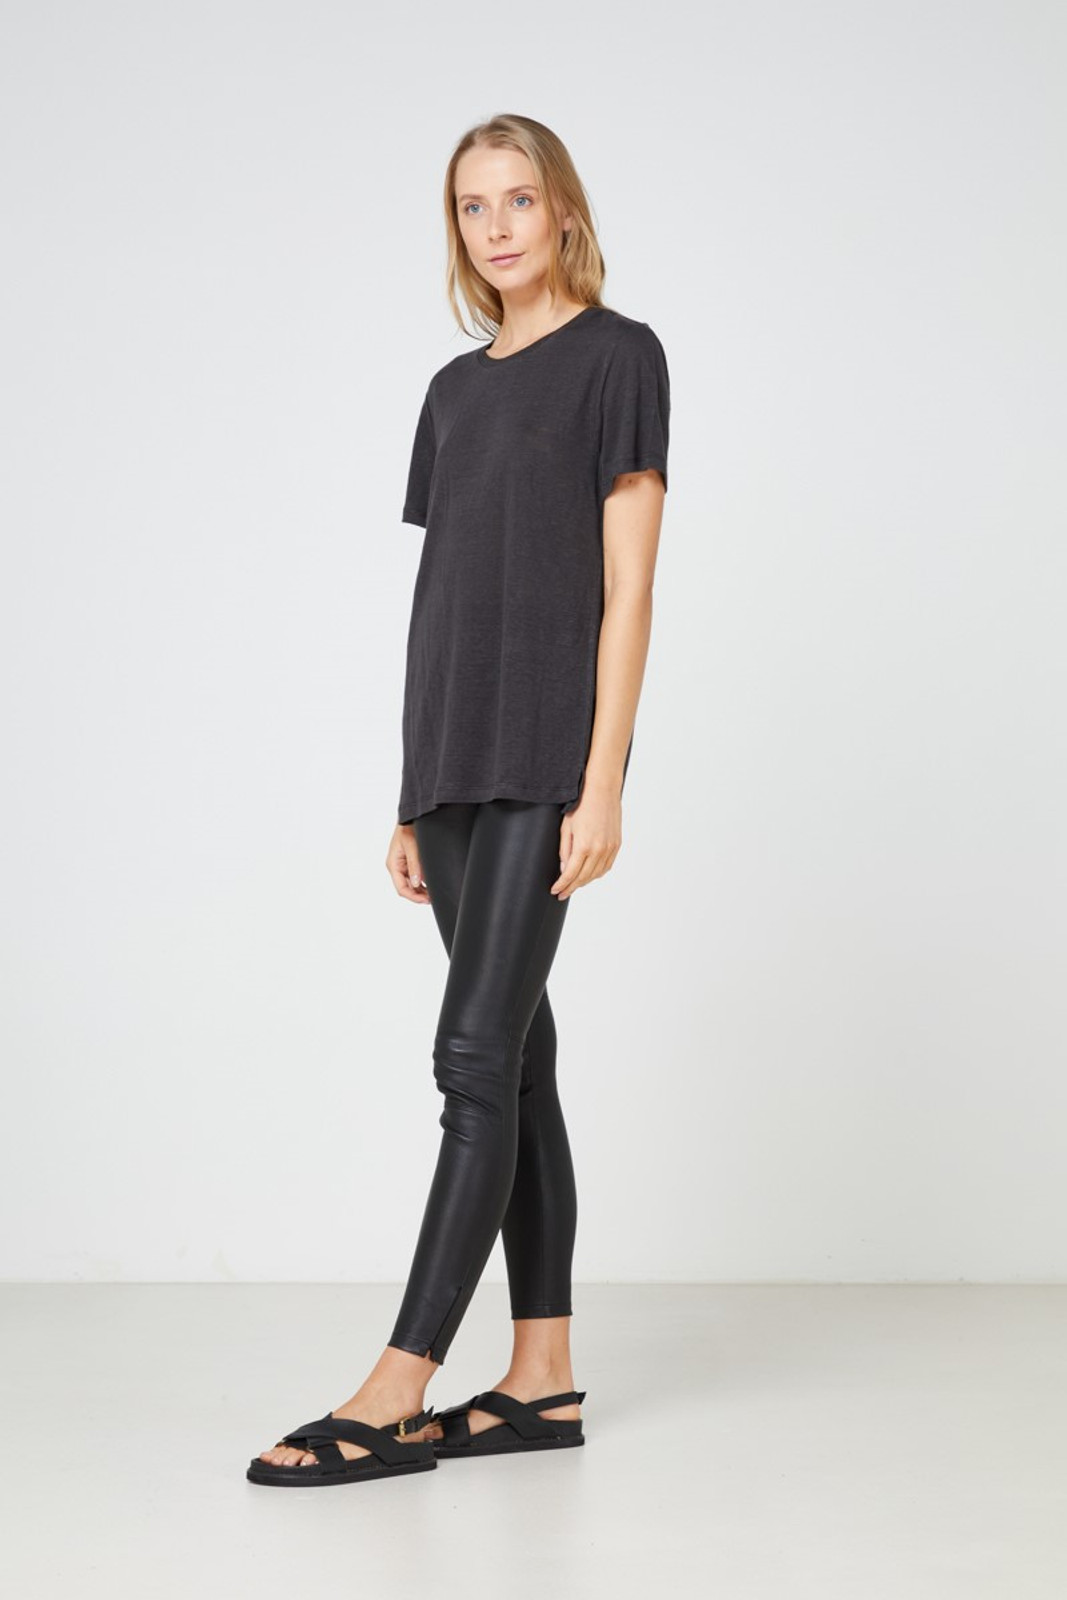 Elka Collective EC Linen Crew Neck Tee Black  1